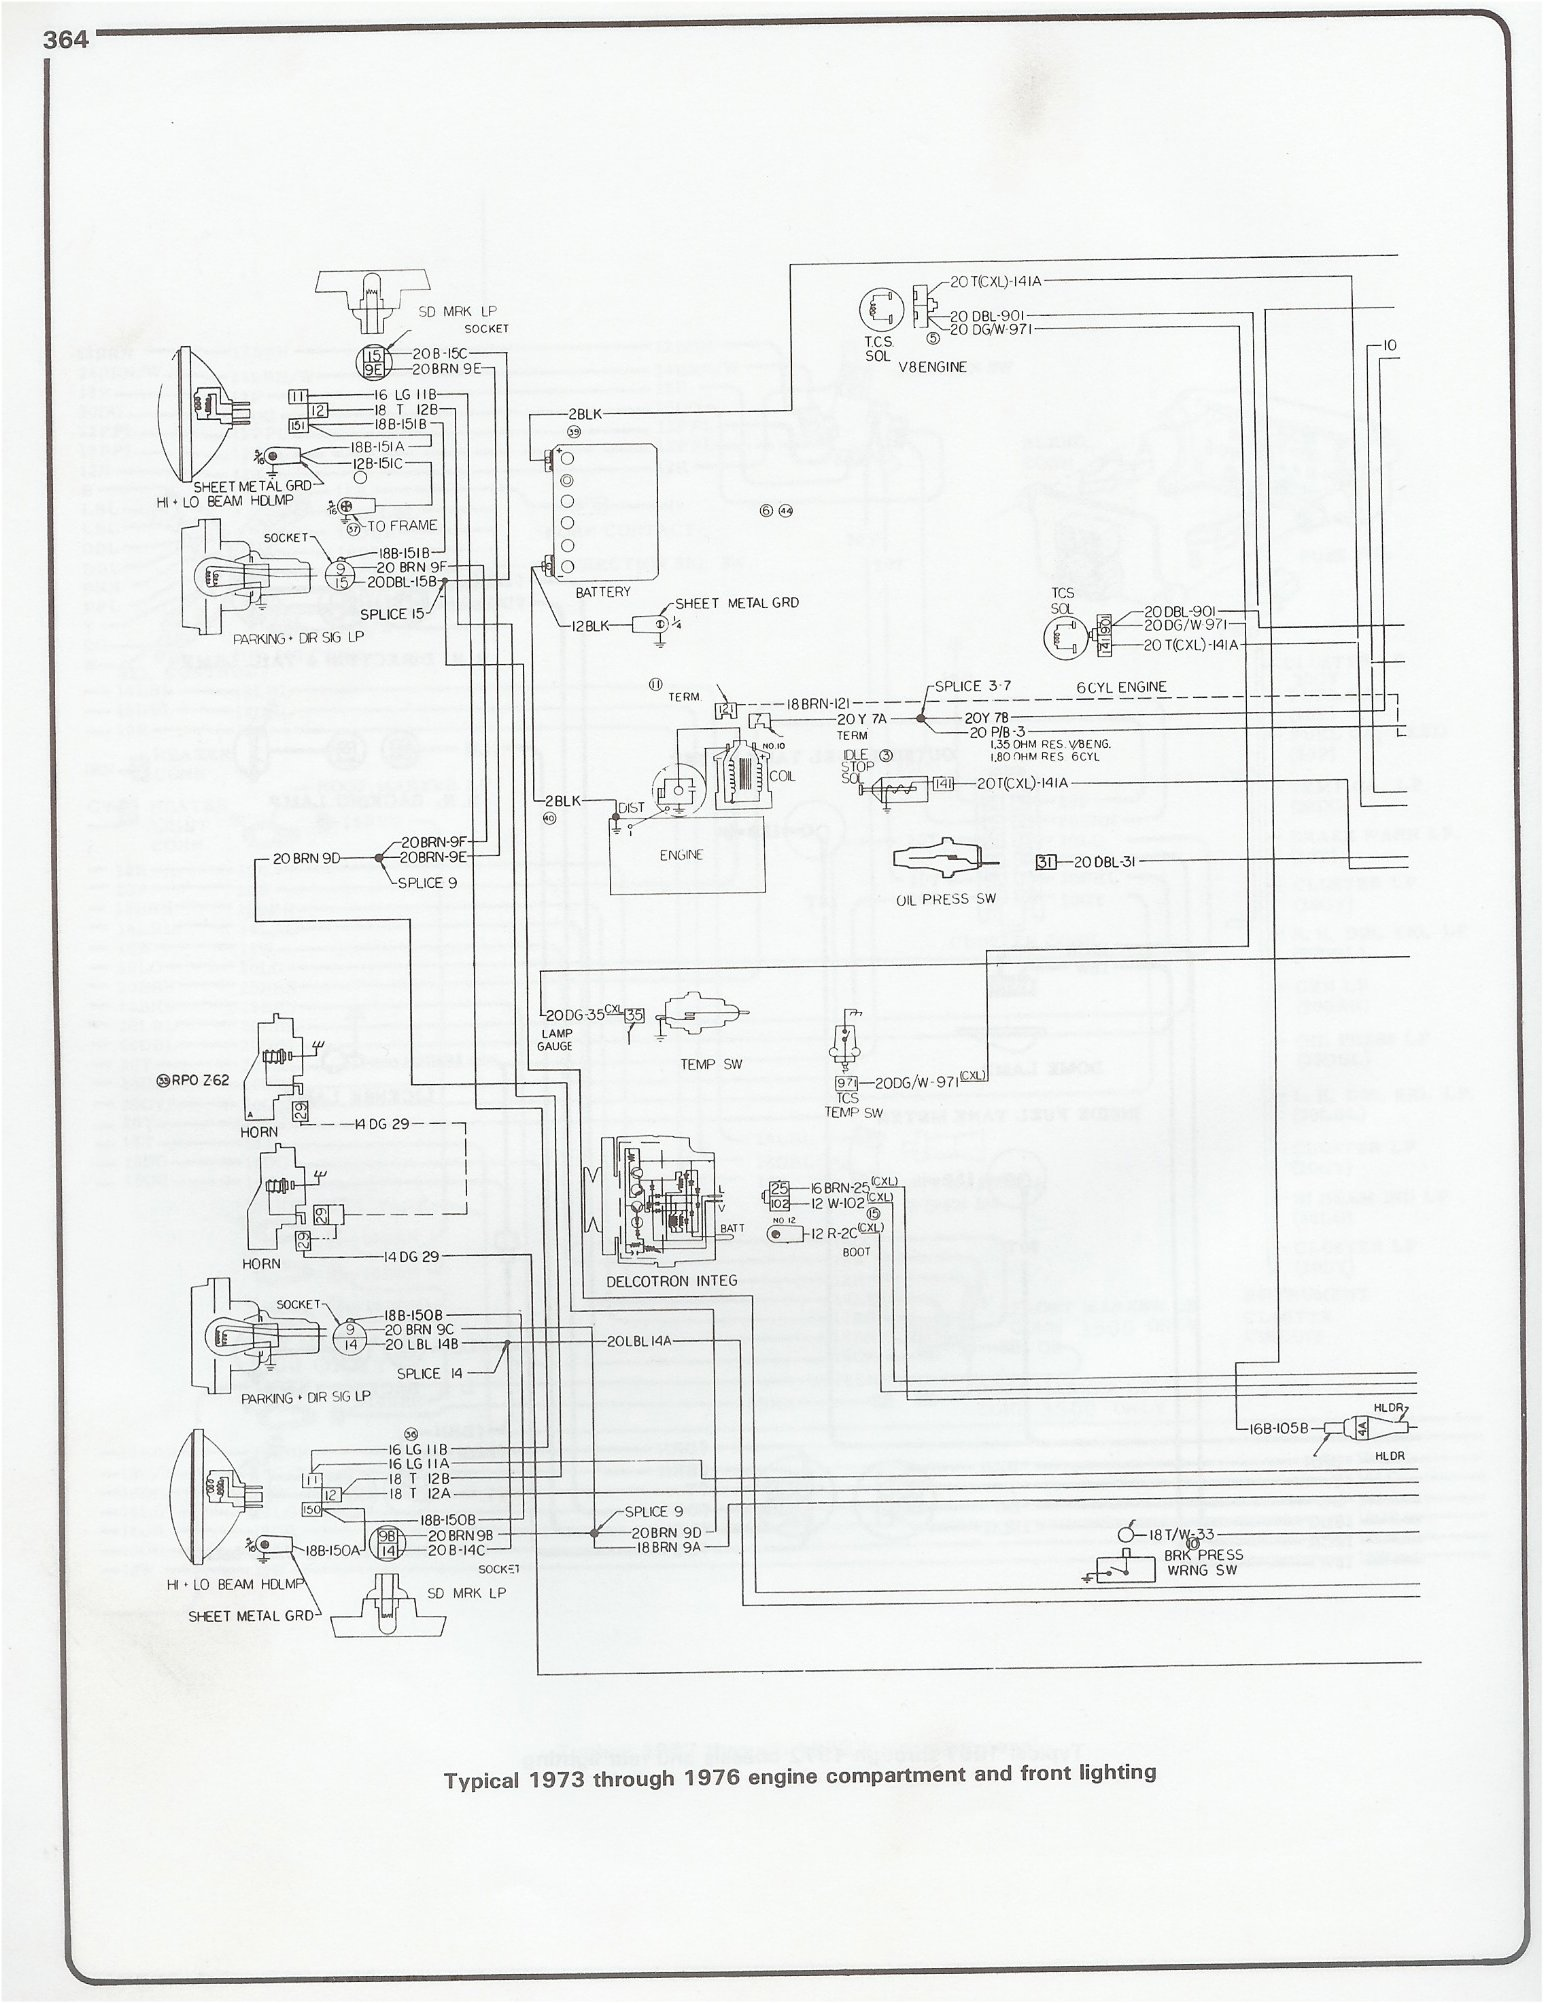 Complete 73 87 Wiring Diagrams 2000 Chevy Tahoe Ground Diagram 76 Engine And Front Lighting